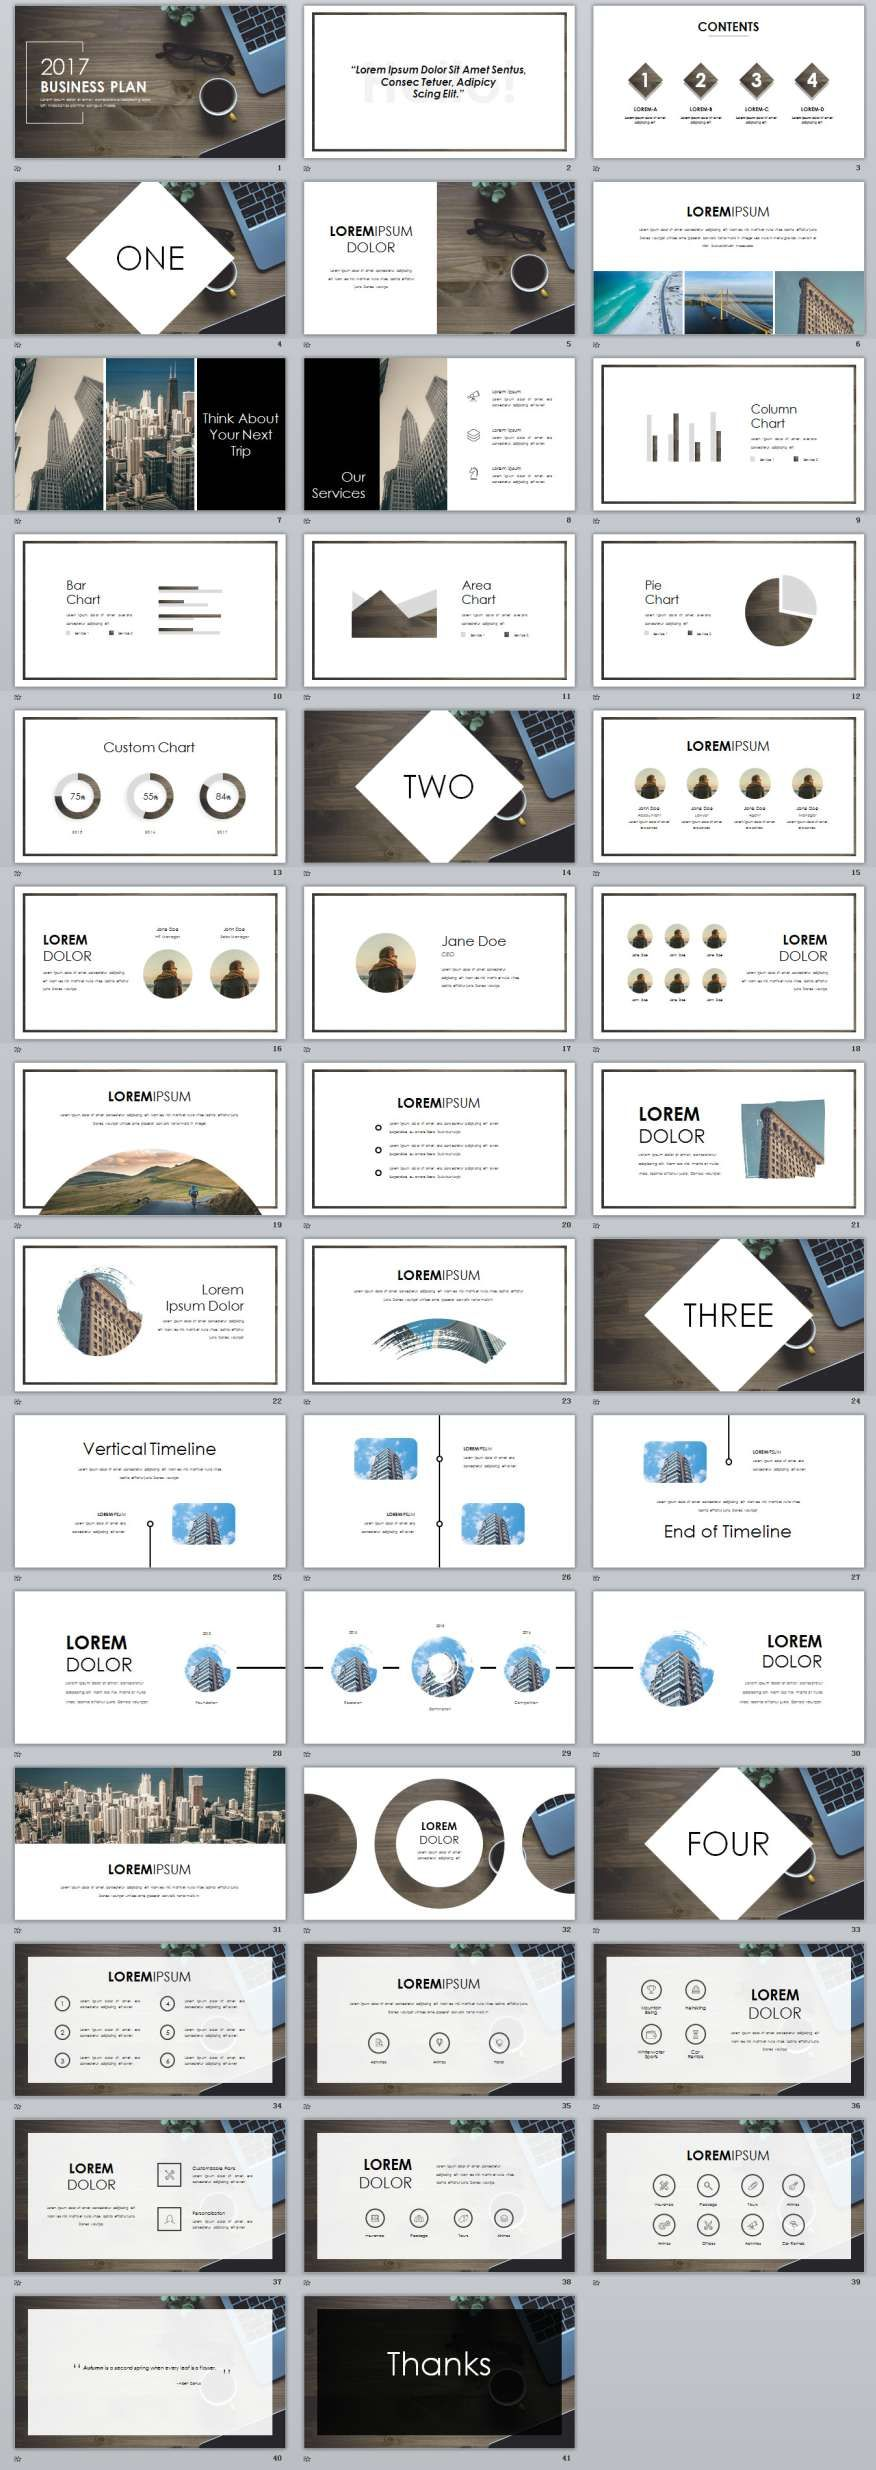 White Business Plan PowerPoint Template Business Planning - Business plan template powerpoint